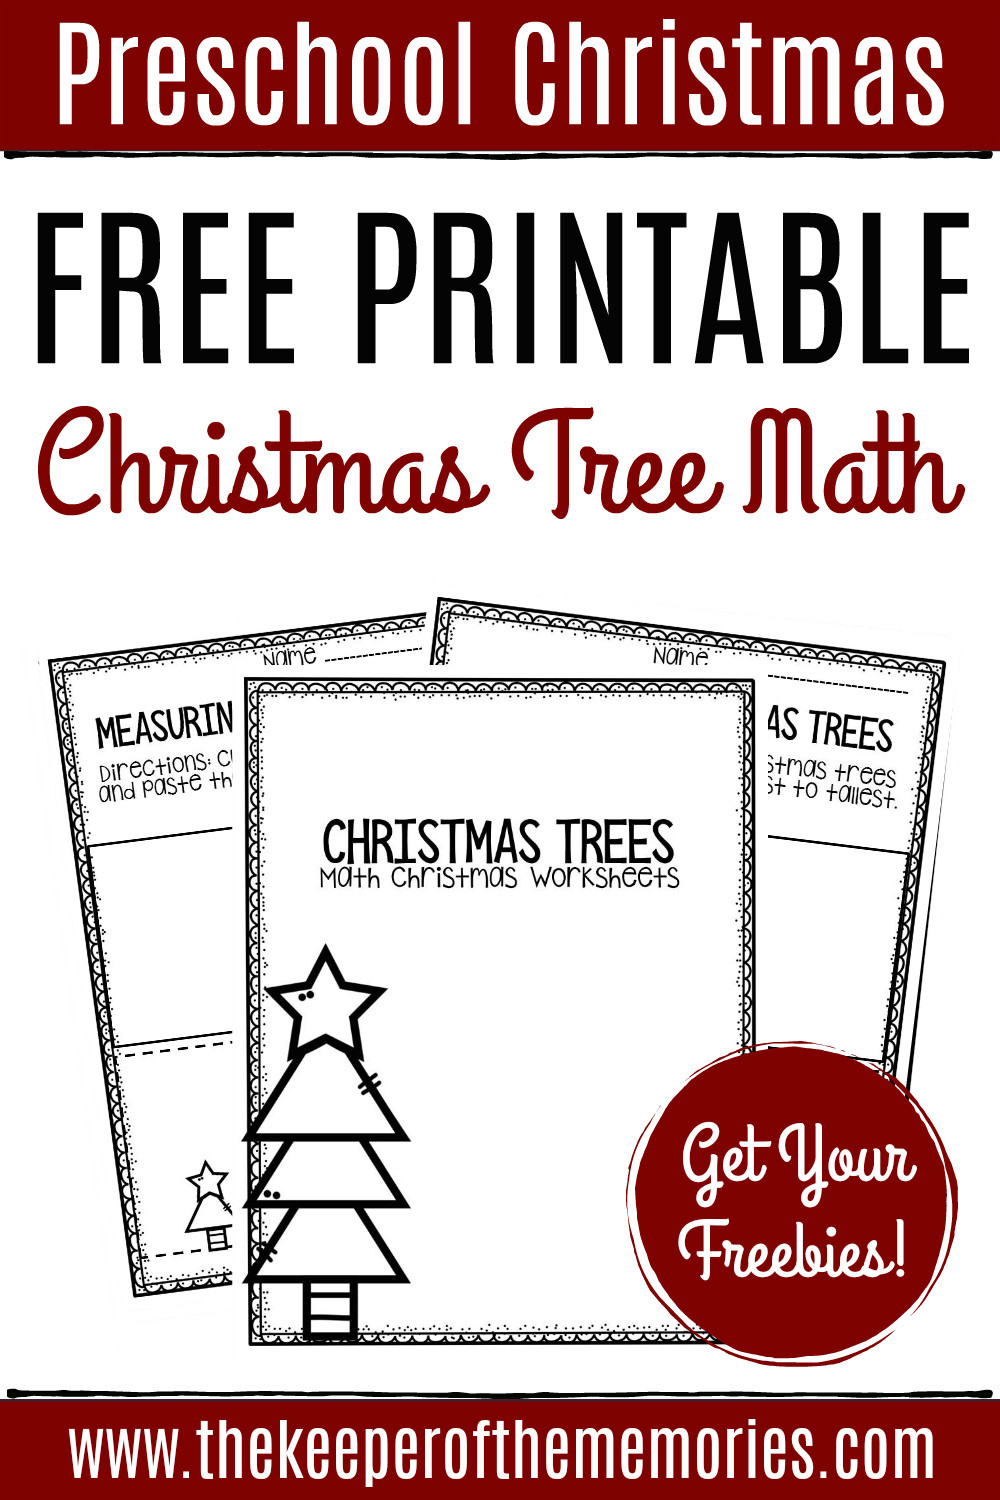 Christmas Worksheets for Preschool Free Printable Measuring Christmas Trees Math Christmas